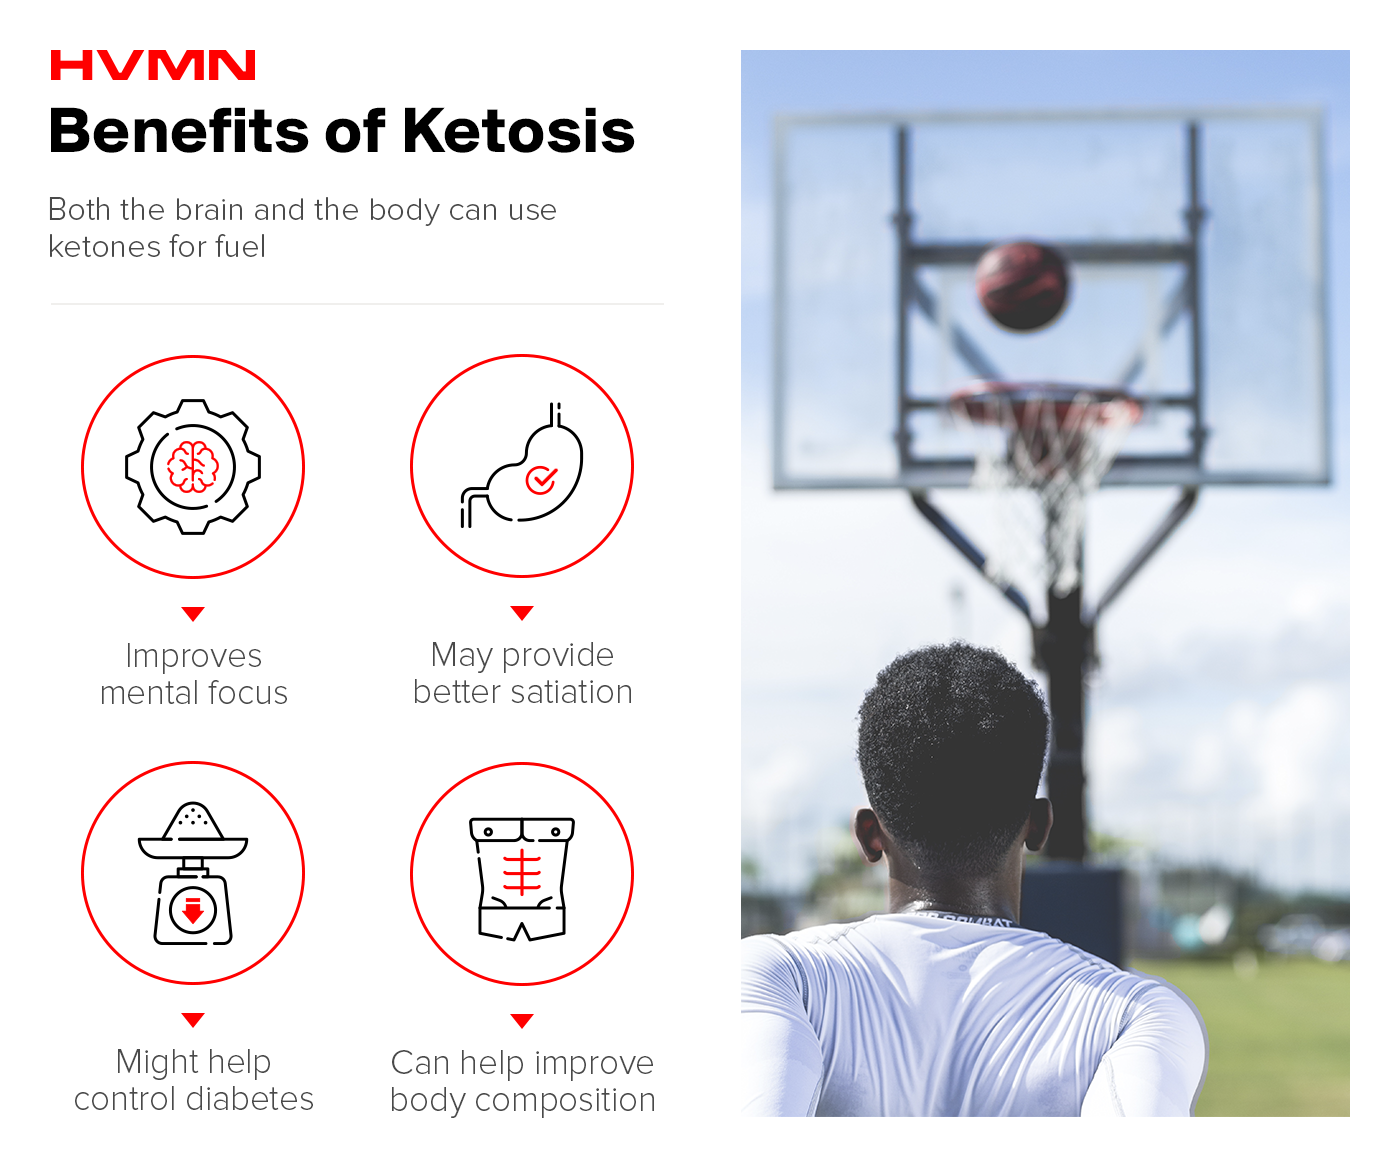 A man shooting a basketball with icons of a gear, a stomach, a scale and a toned body, representing the benefits of ketosis